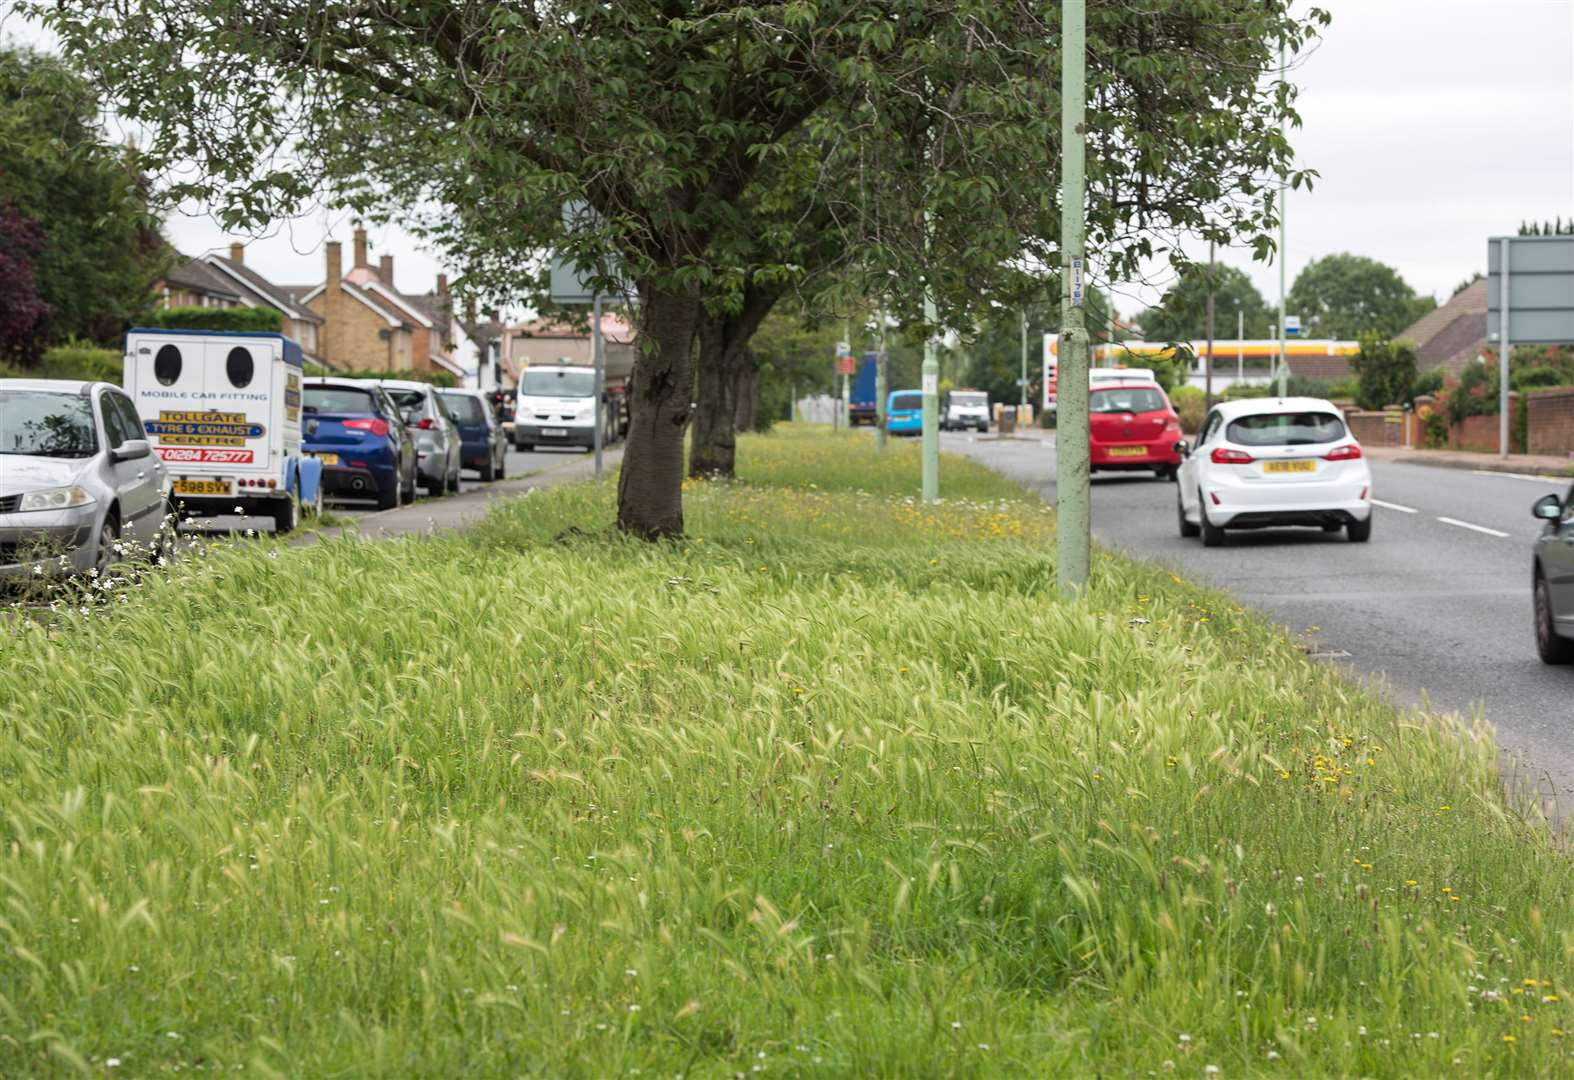 West Suffolk Council accused of mowing grass at businesses as estates are neglected